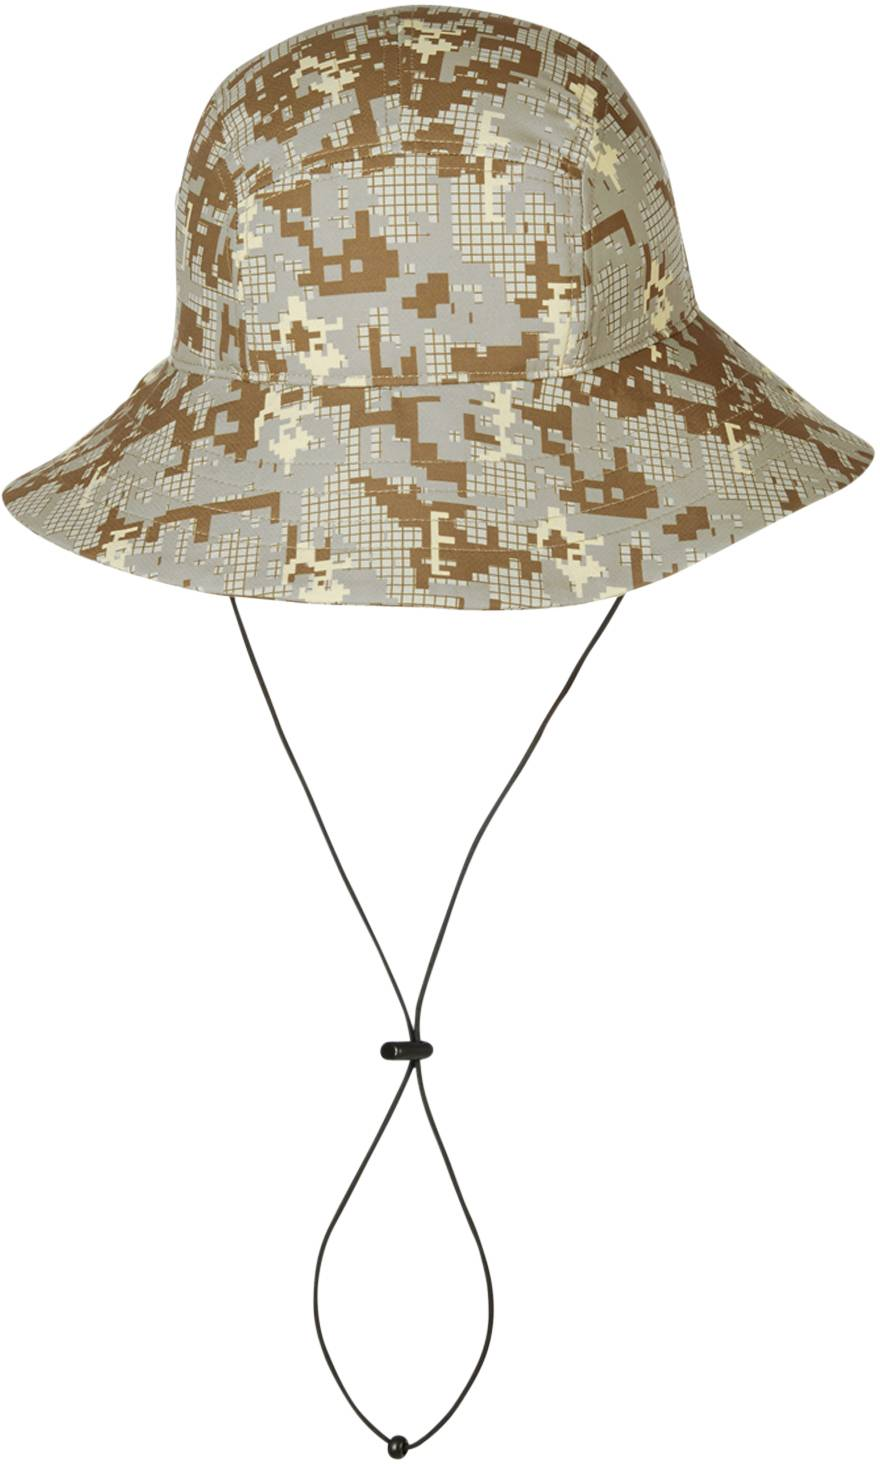 cabf366adb4 ... sweden under armour custom corporate digi camo warrior bucket hat 825ac  bd1a7